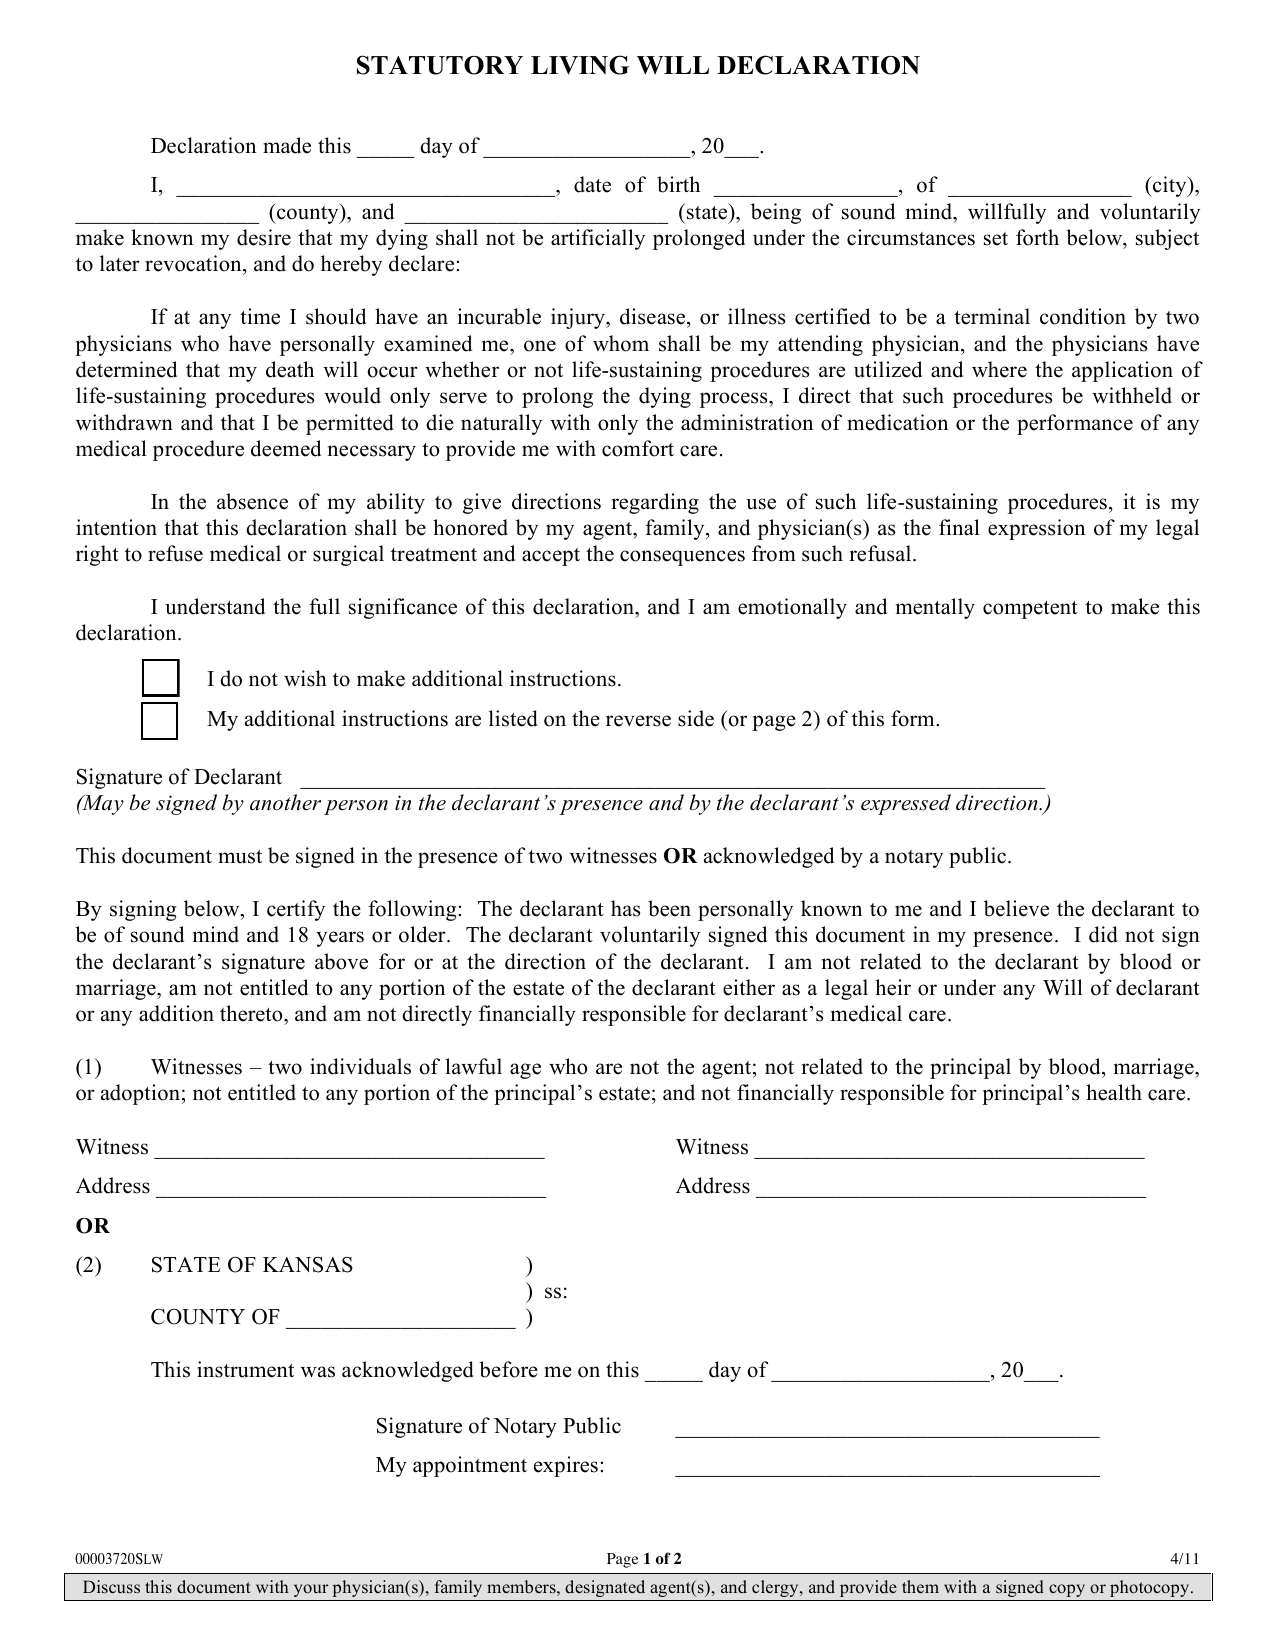 kansas_living_will.pdf  Application Form on blank mortgage loan, lender signature, document mortgage process, revised government monitoring pages,